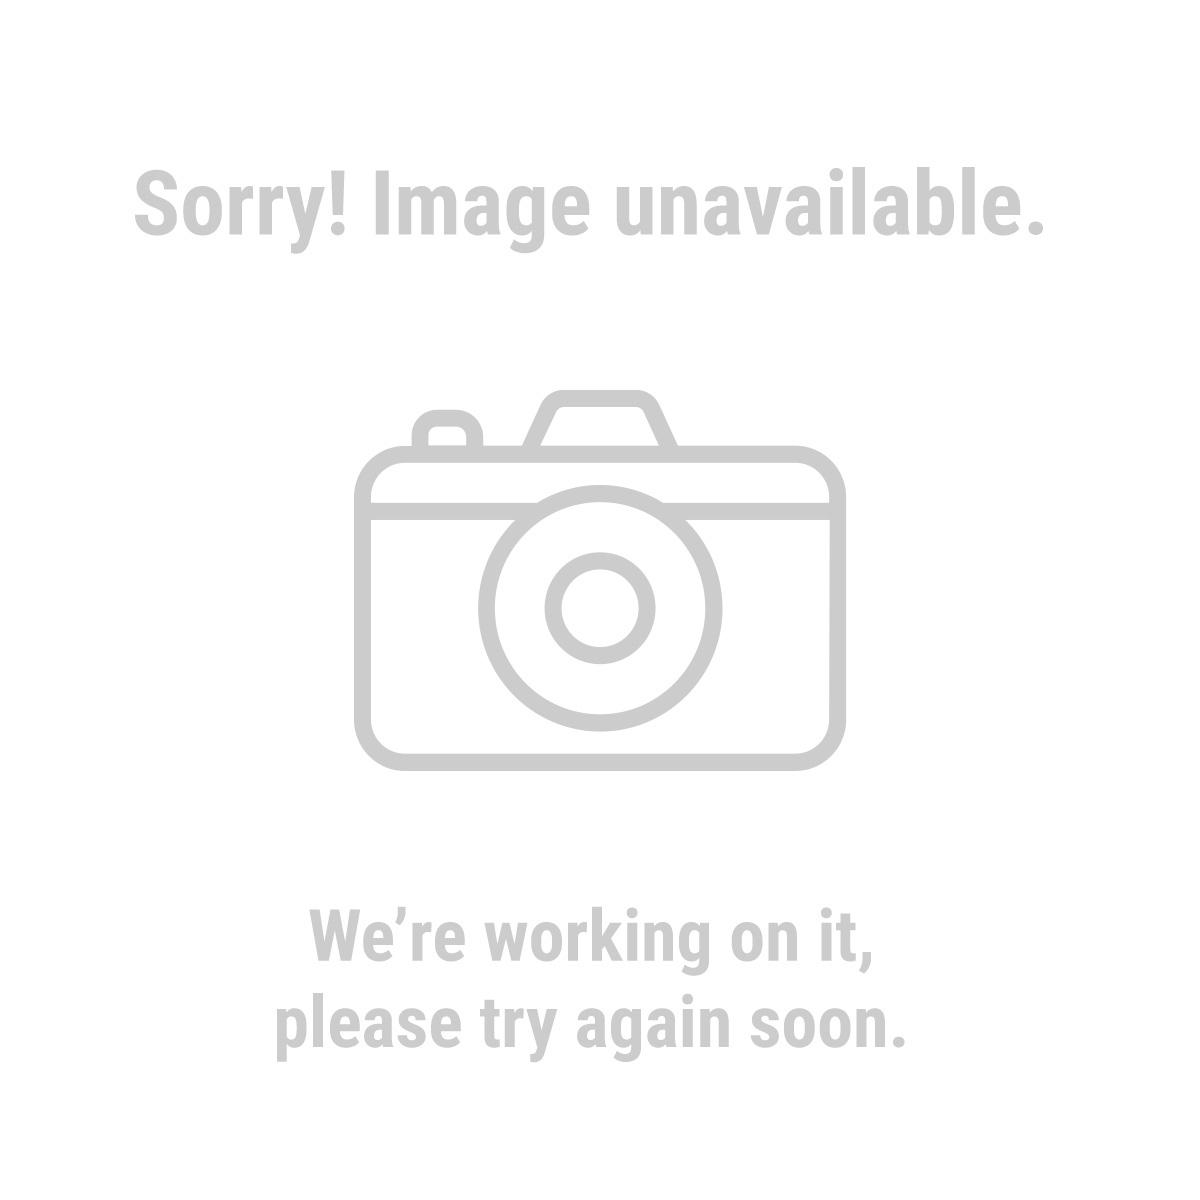 ATV/Utility Winch Mounting Plate